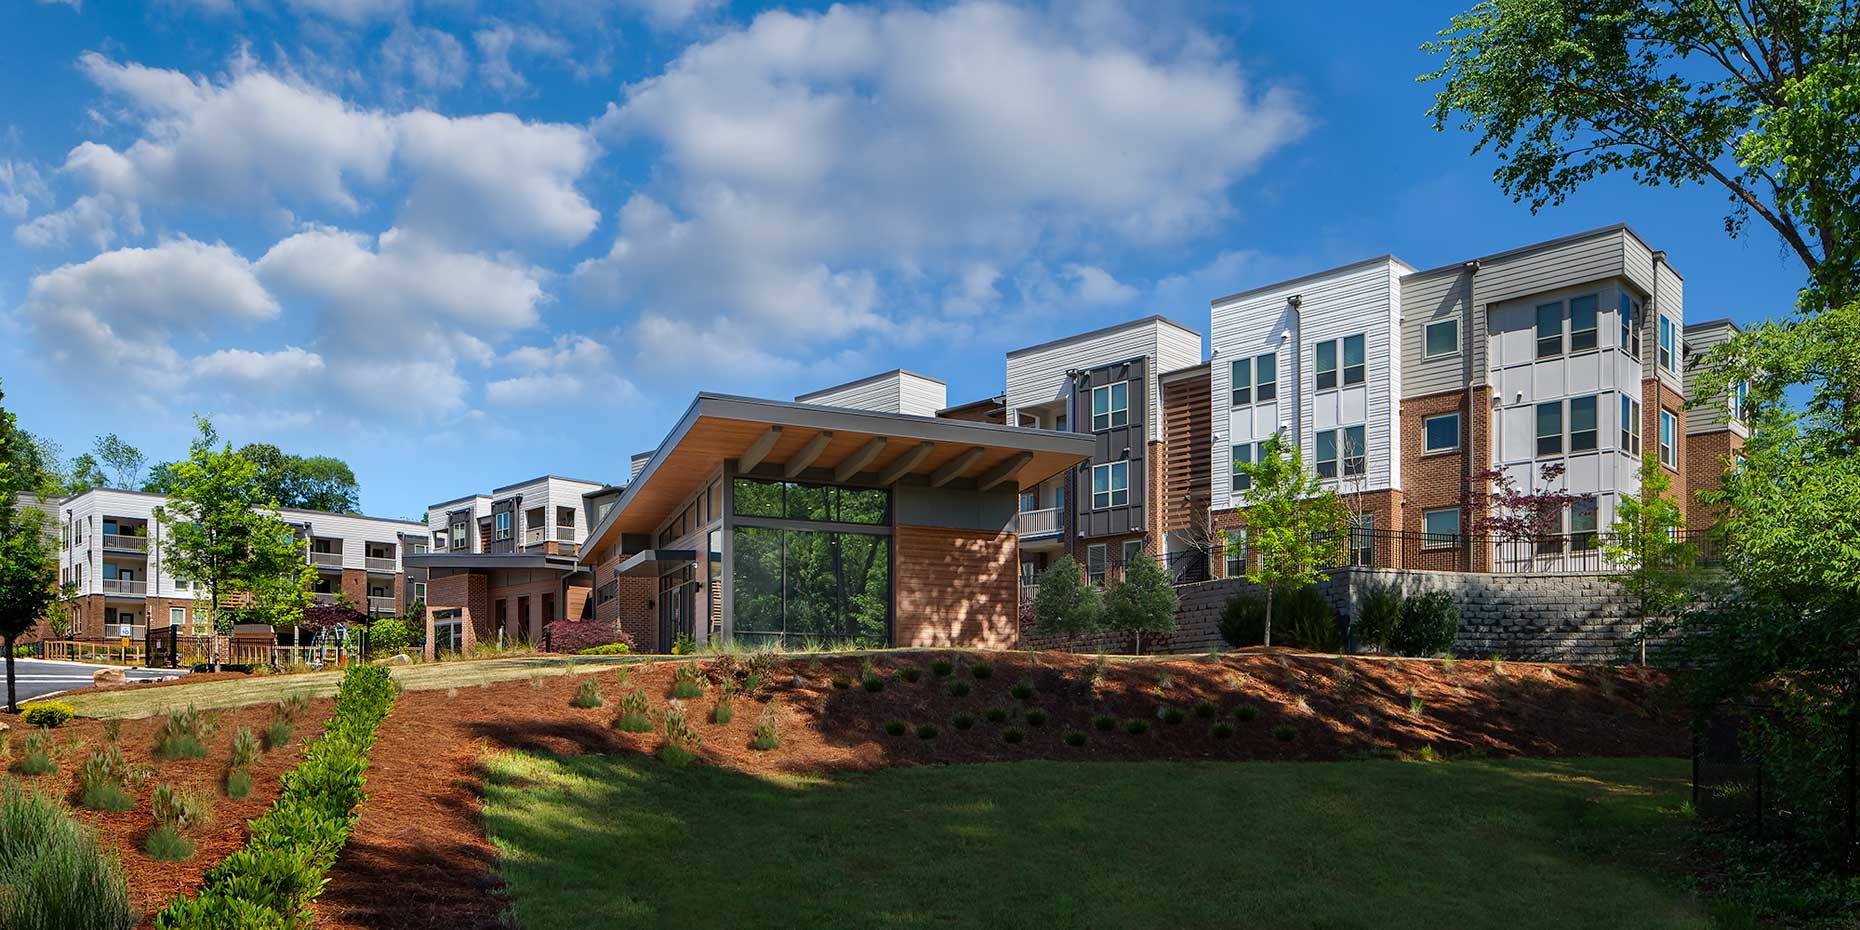 A pastoral setting surrounds the buildings of the Gardenside at Villages of East Lake